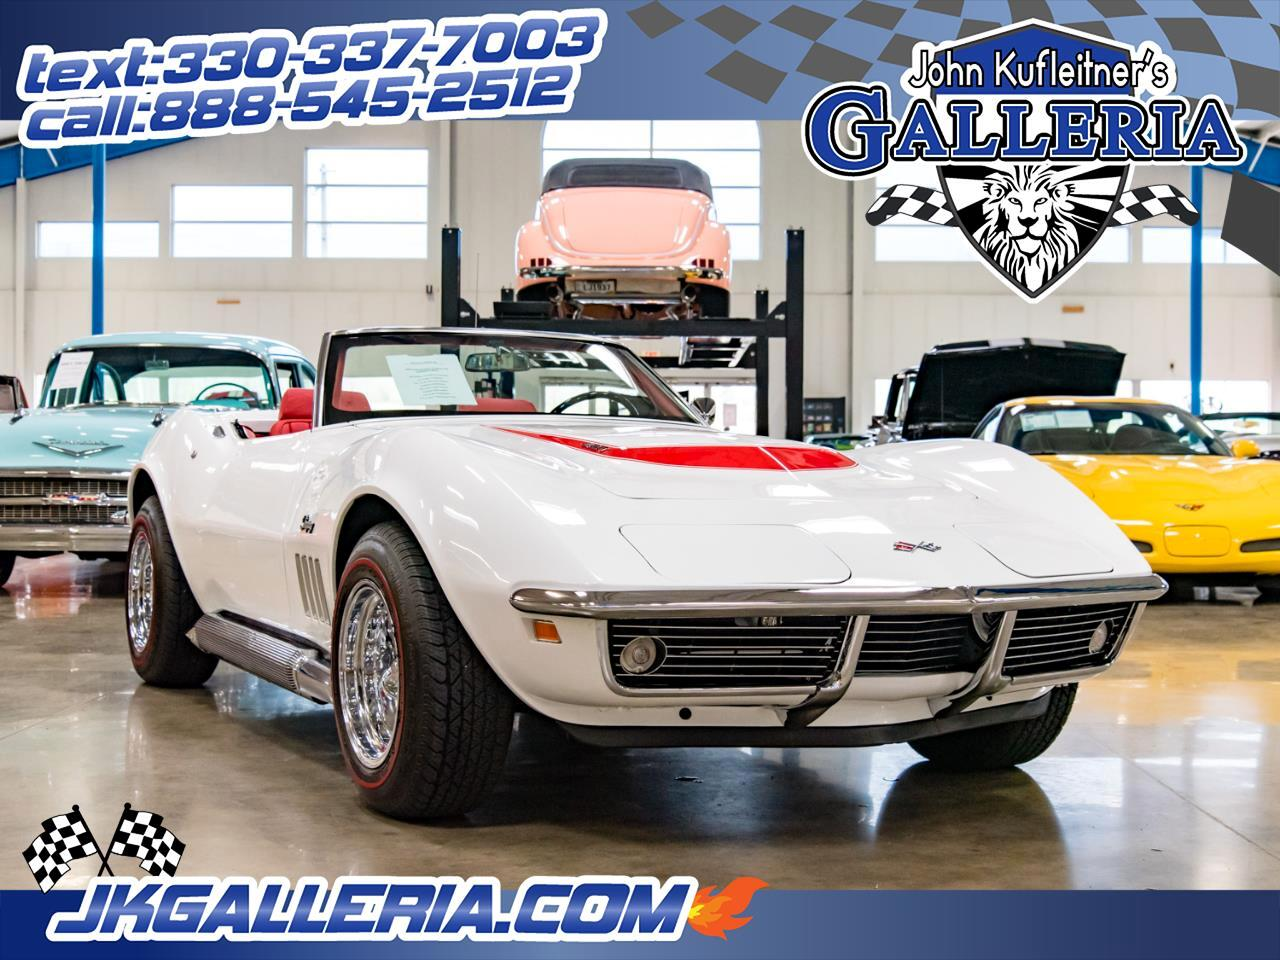 1969 Chevrolet Corvette Stingray Convertible 427 4BBL / 4speed